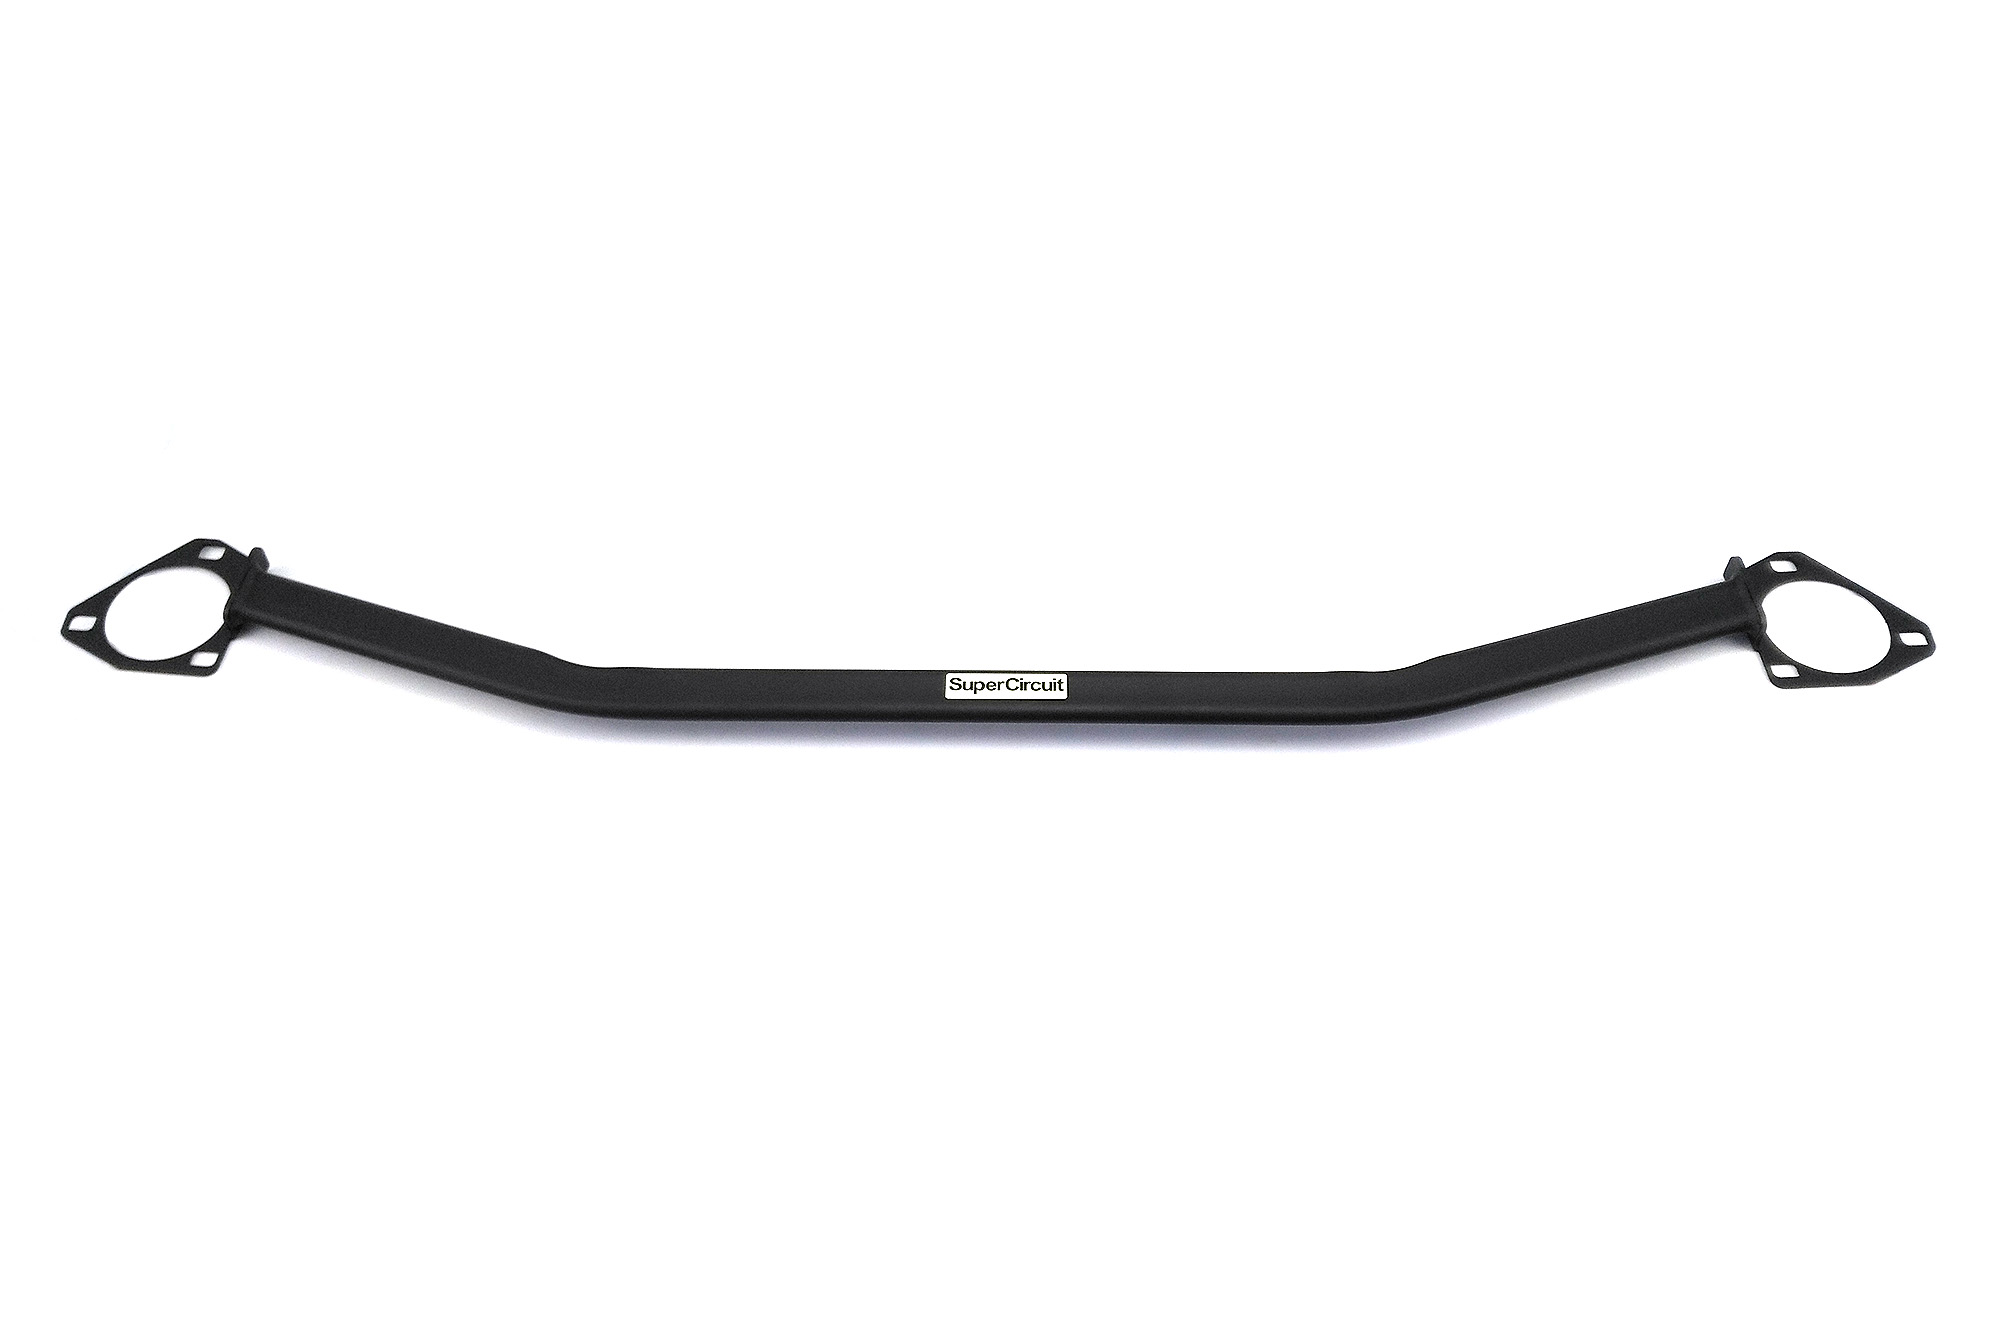 8th gen Honda Civic FD Front Strut Bar by SUPERCIRCUIT